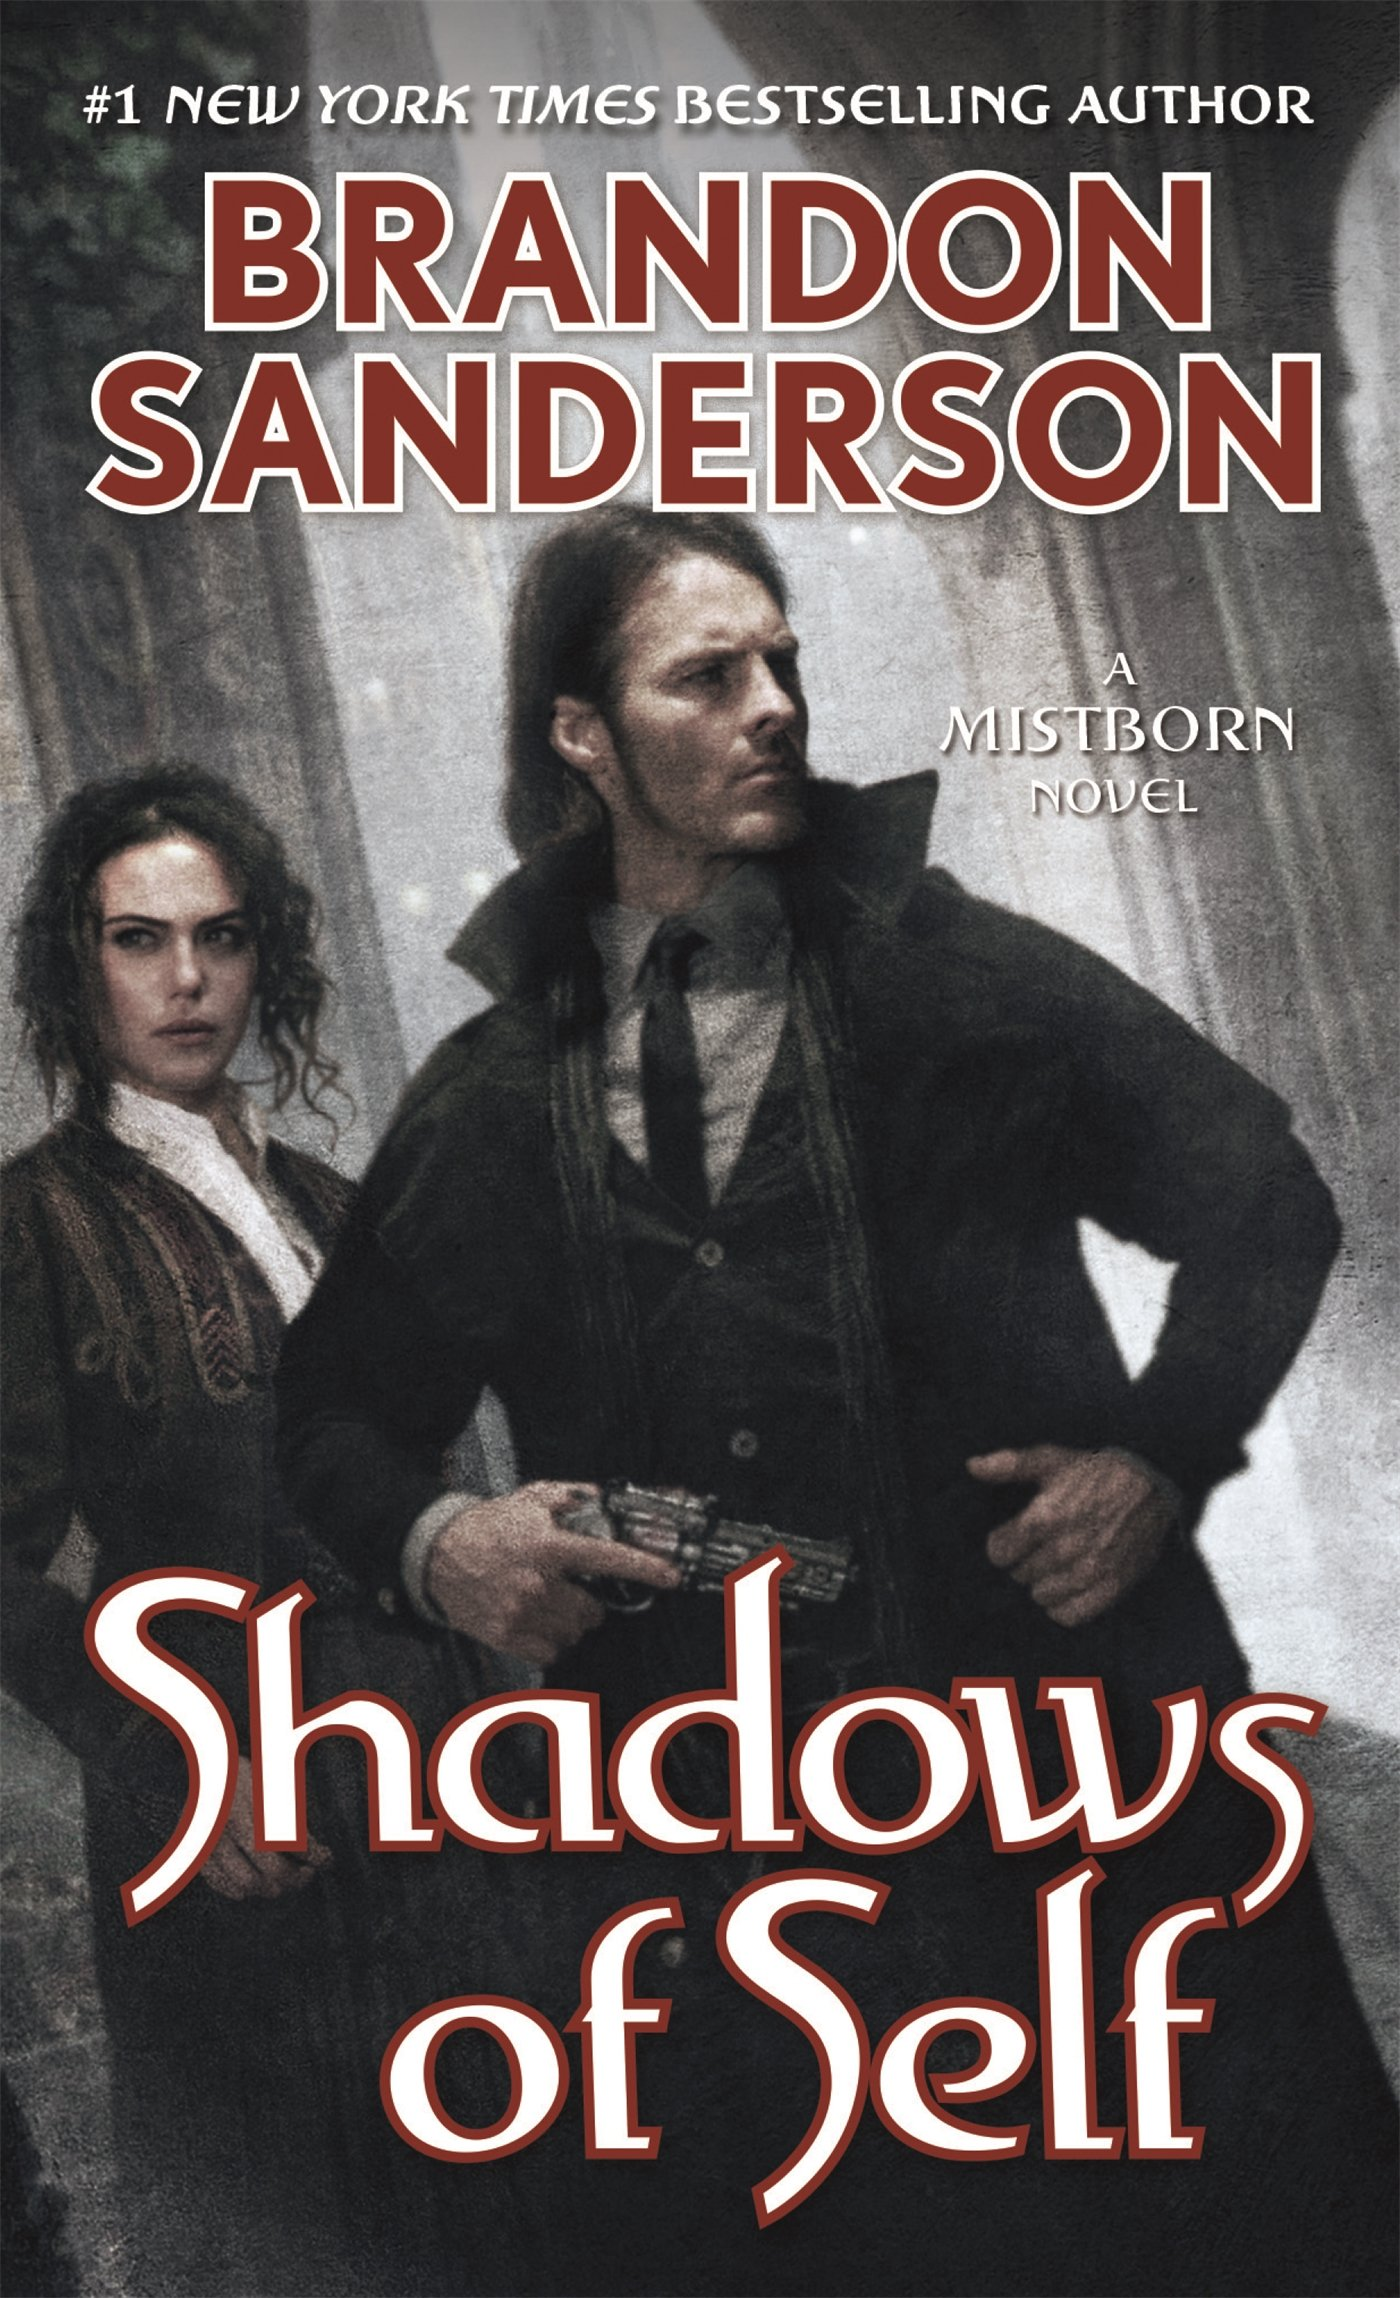 Of mistborn mourning bands epub download the